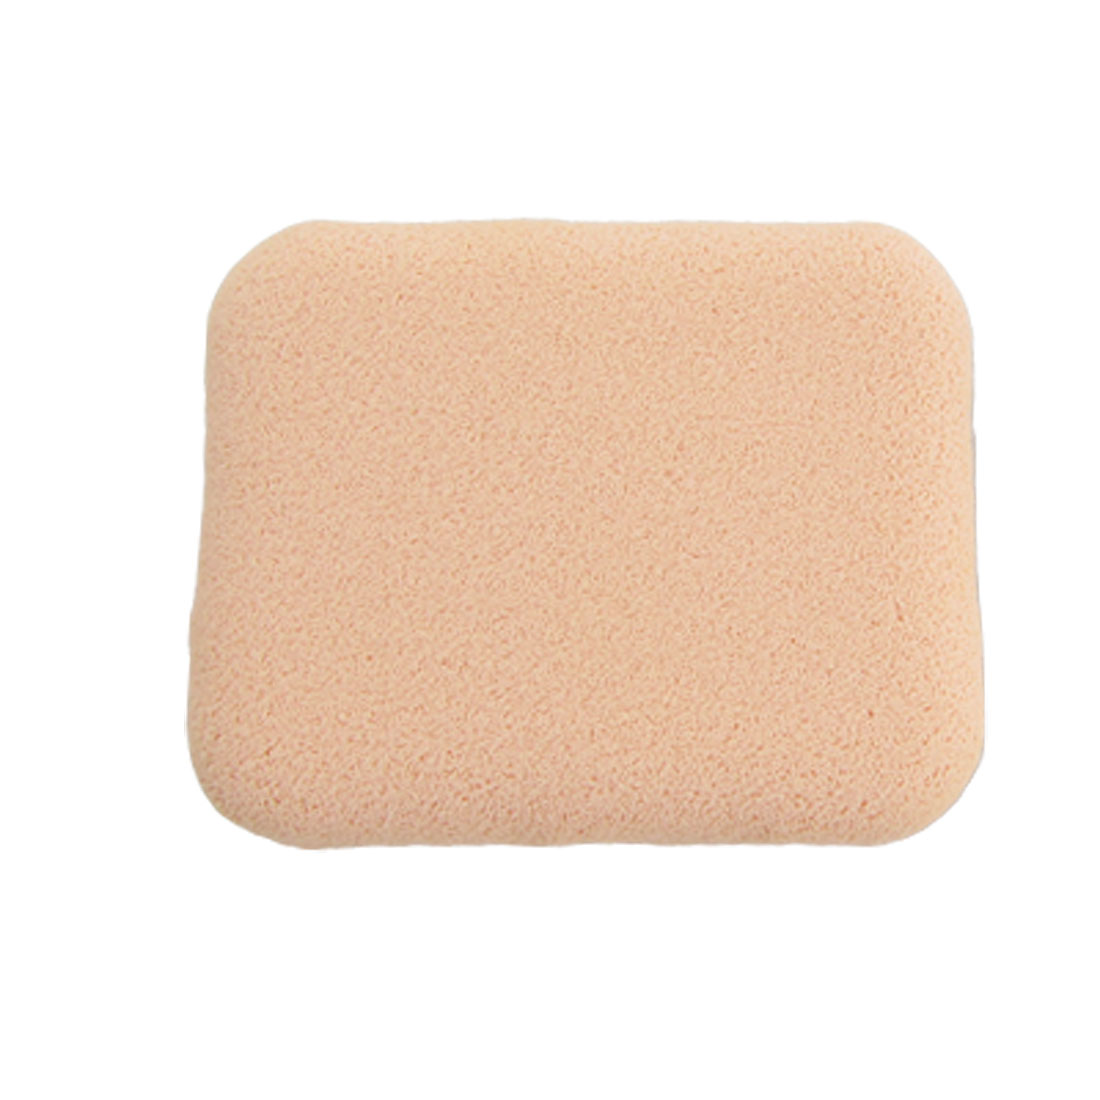 Ladies Face Sponge Makeup Cosmetic Retangle Powder Puff 2 Pcs